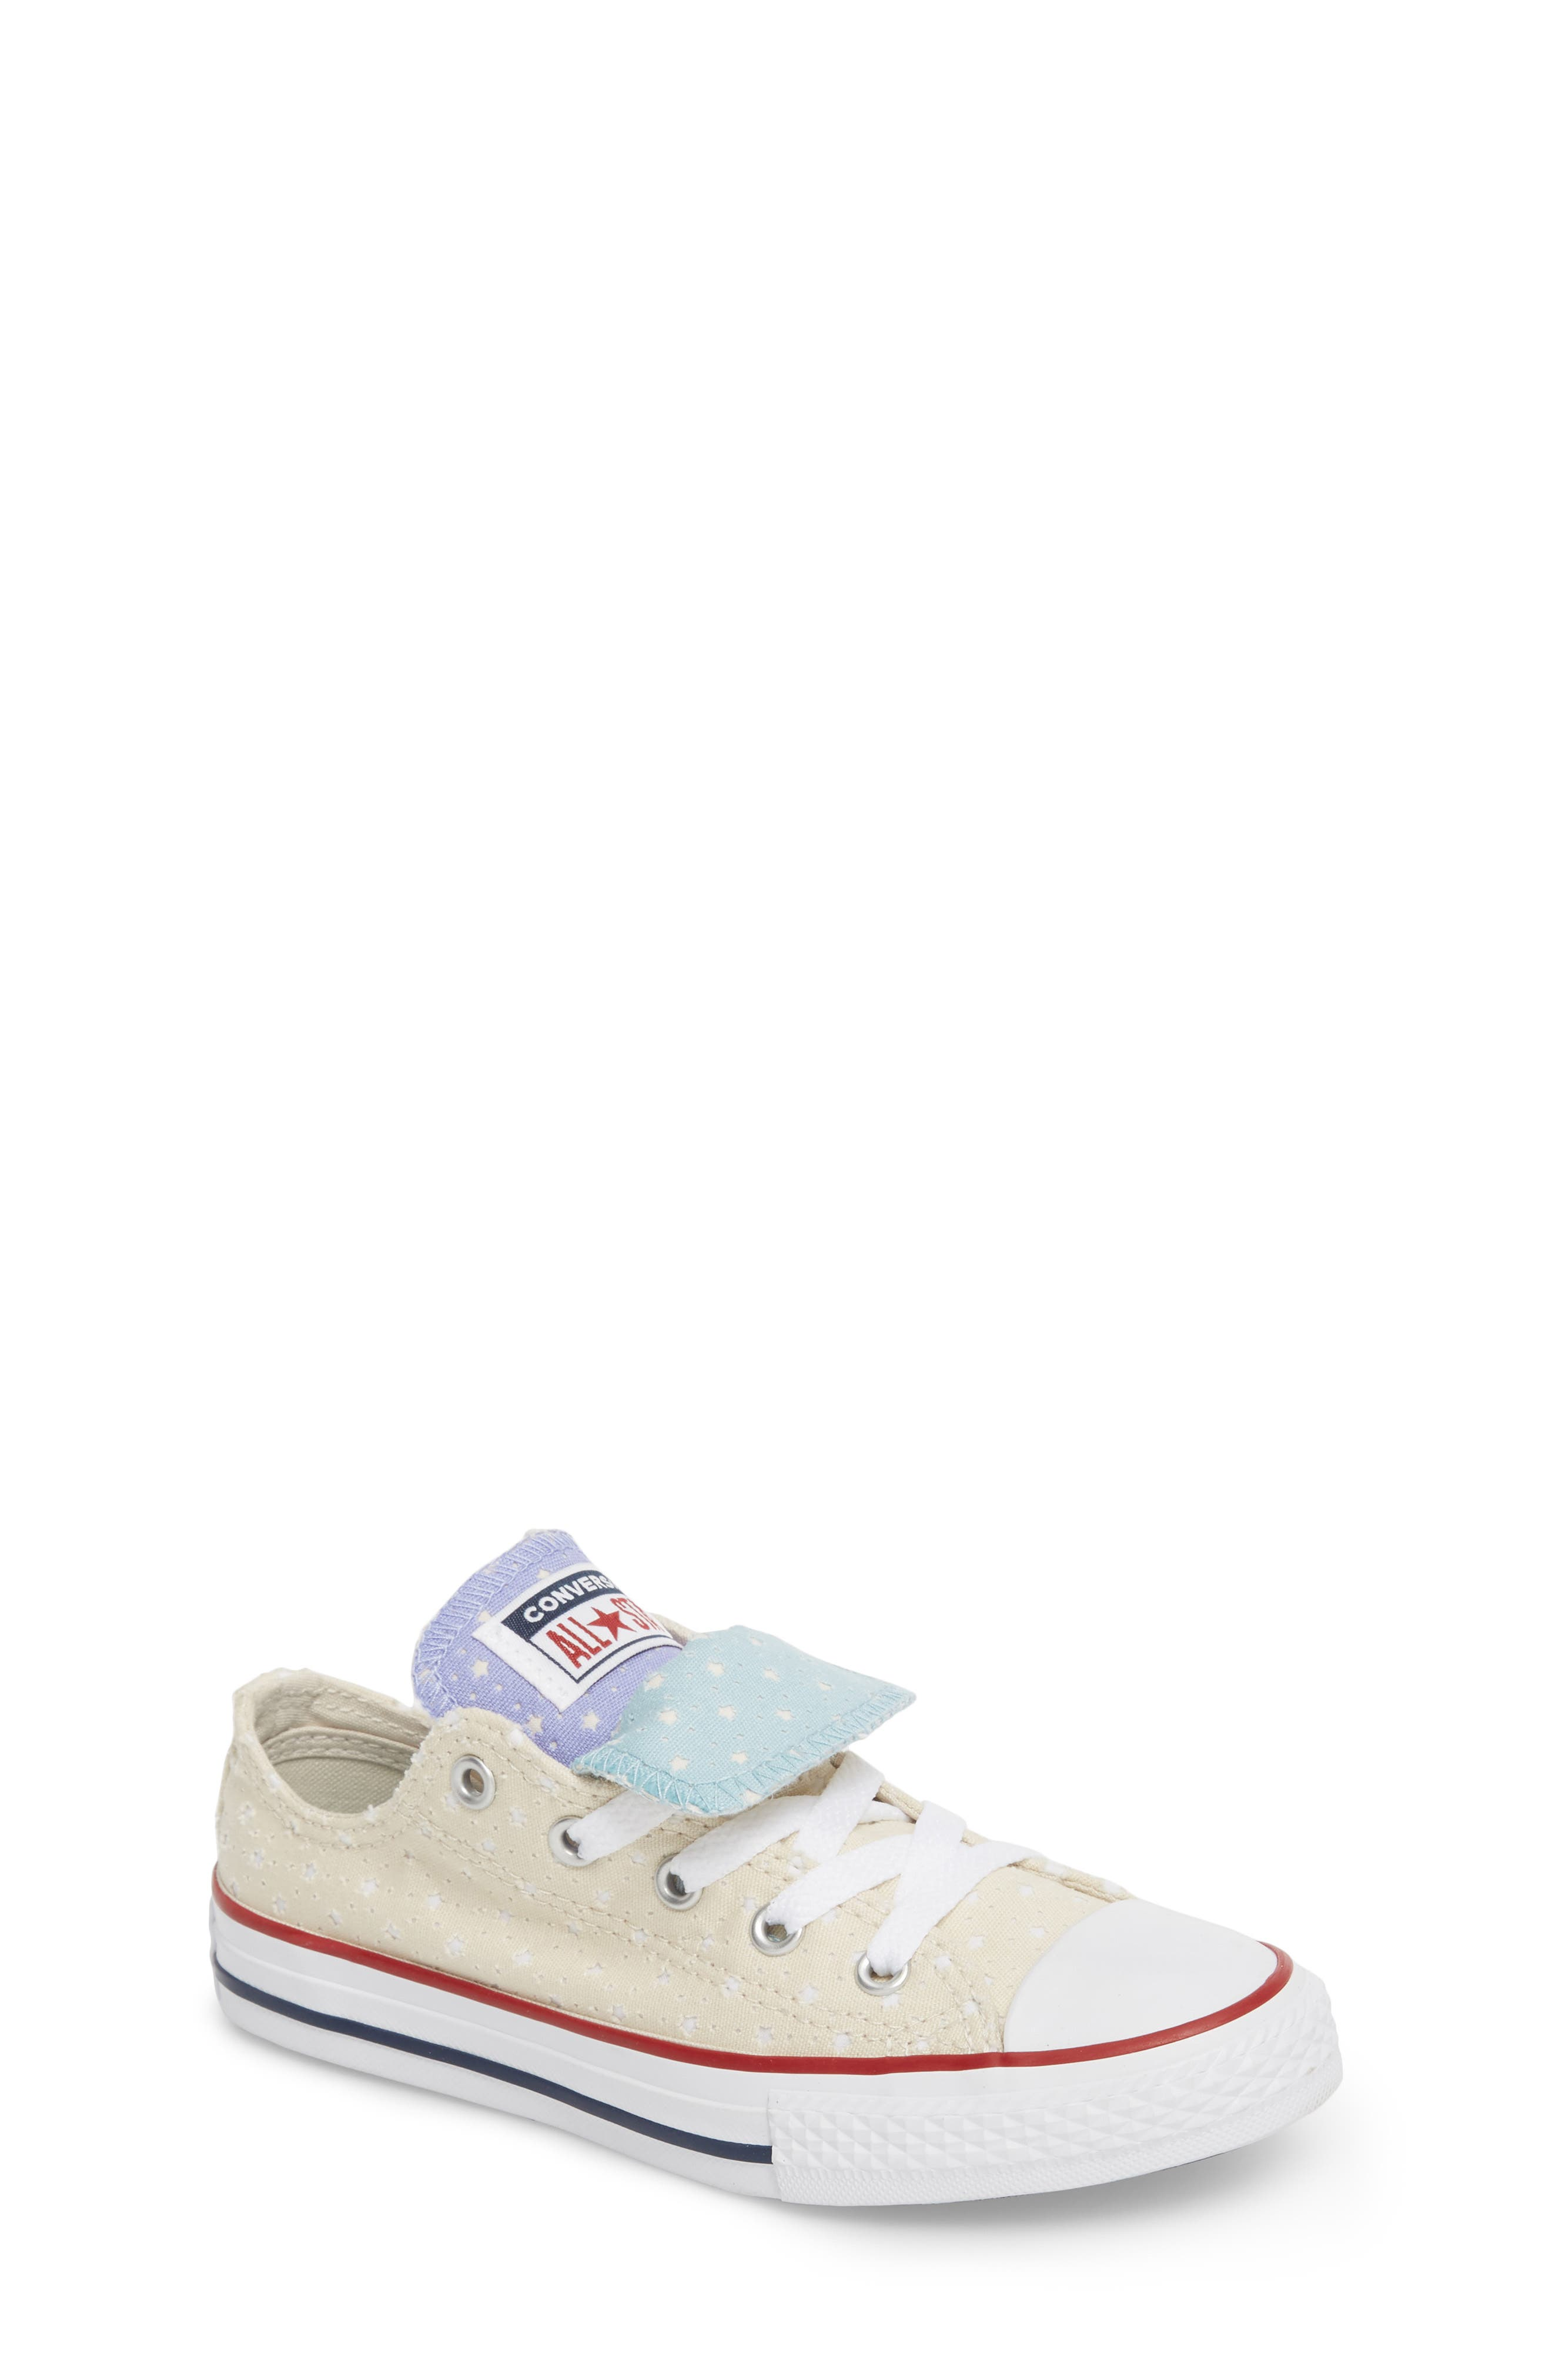 Chuck Taylor<sup>®</sup> All Star<sup>®</sup> Double Tongue Sneaker,                             Main thumbnail 3, color,